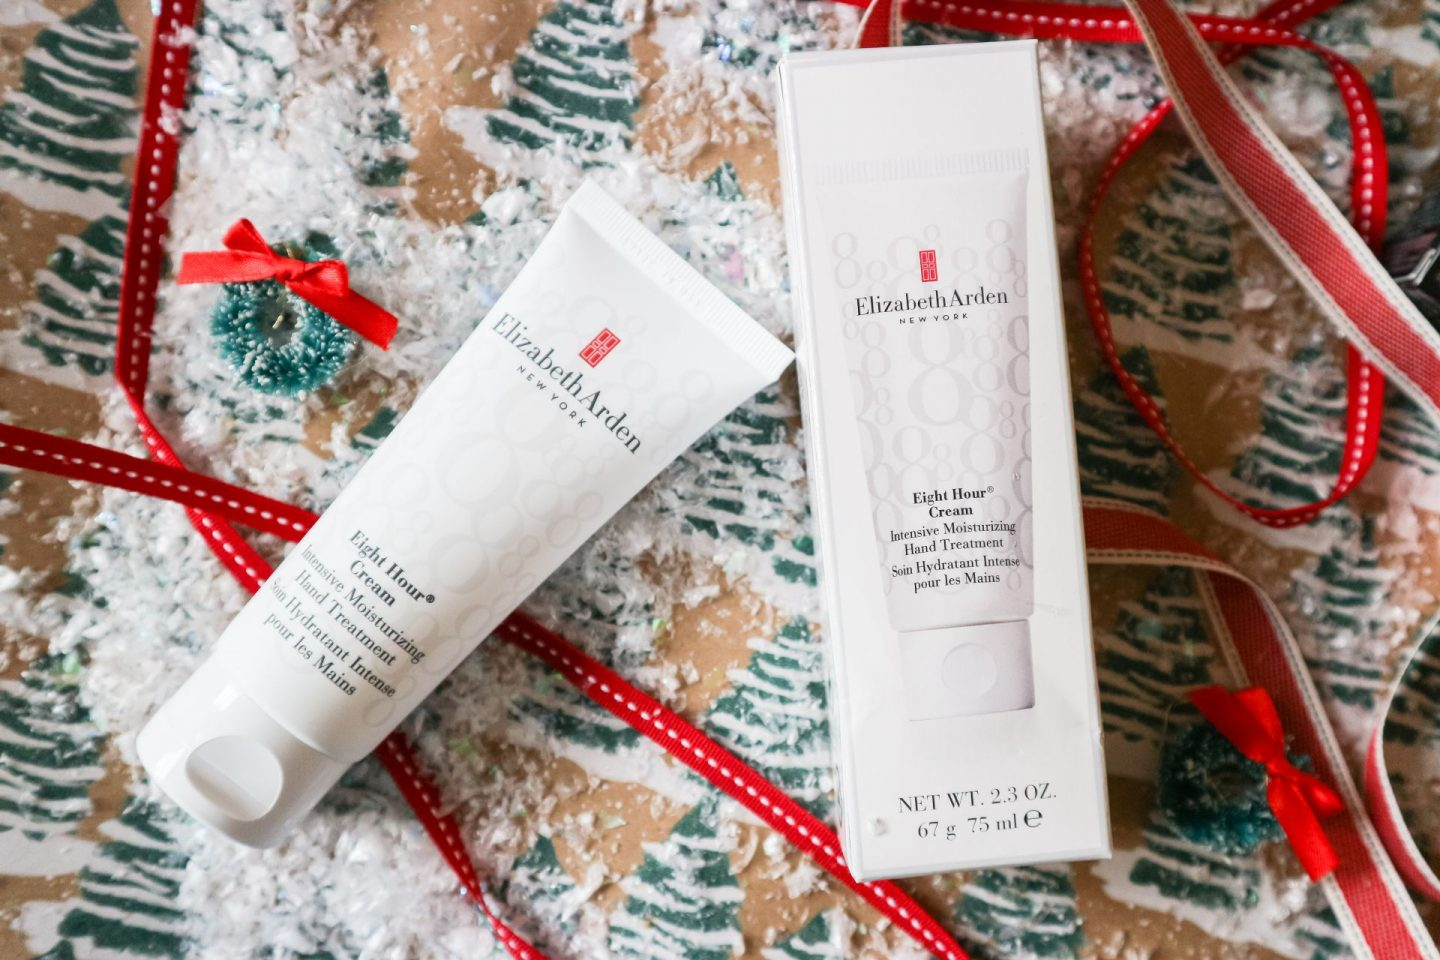 Elizabeth Arden Eight Hour Cream Intensive Moisturising Hand Treatment review